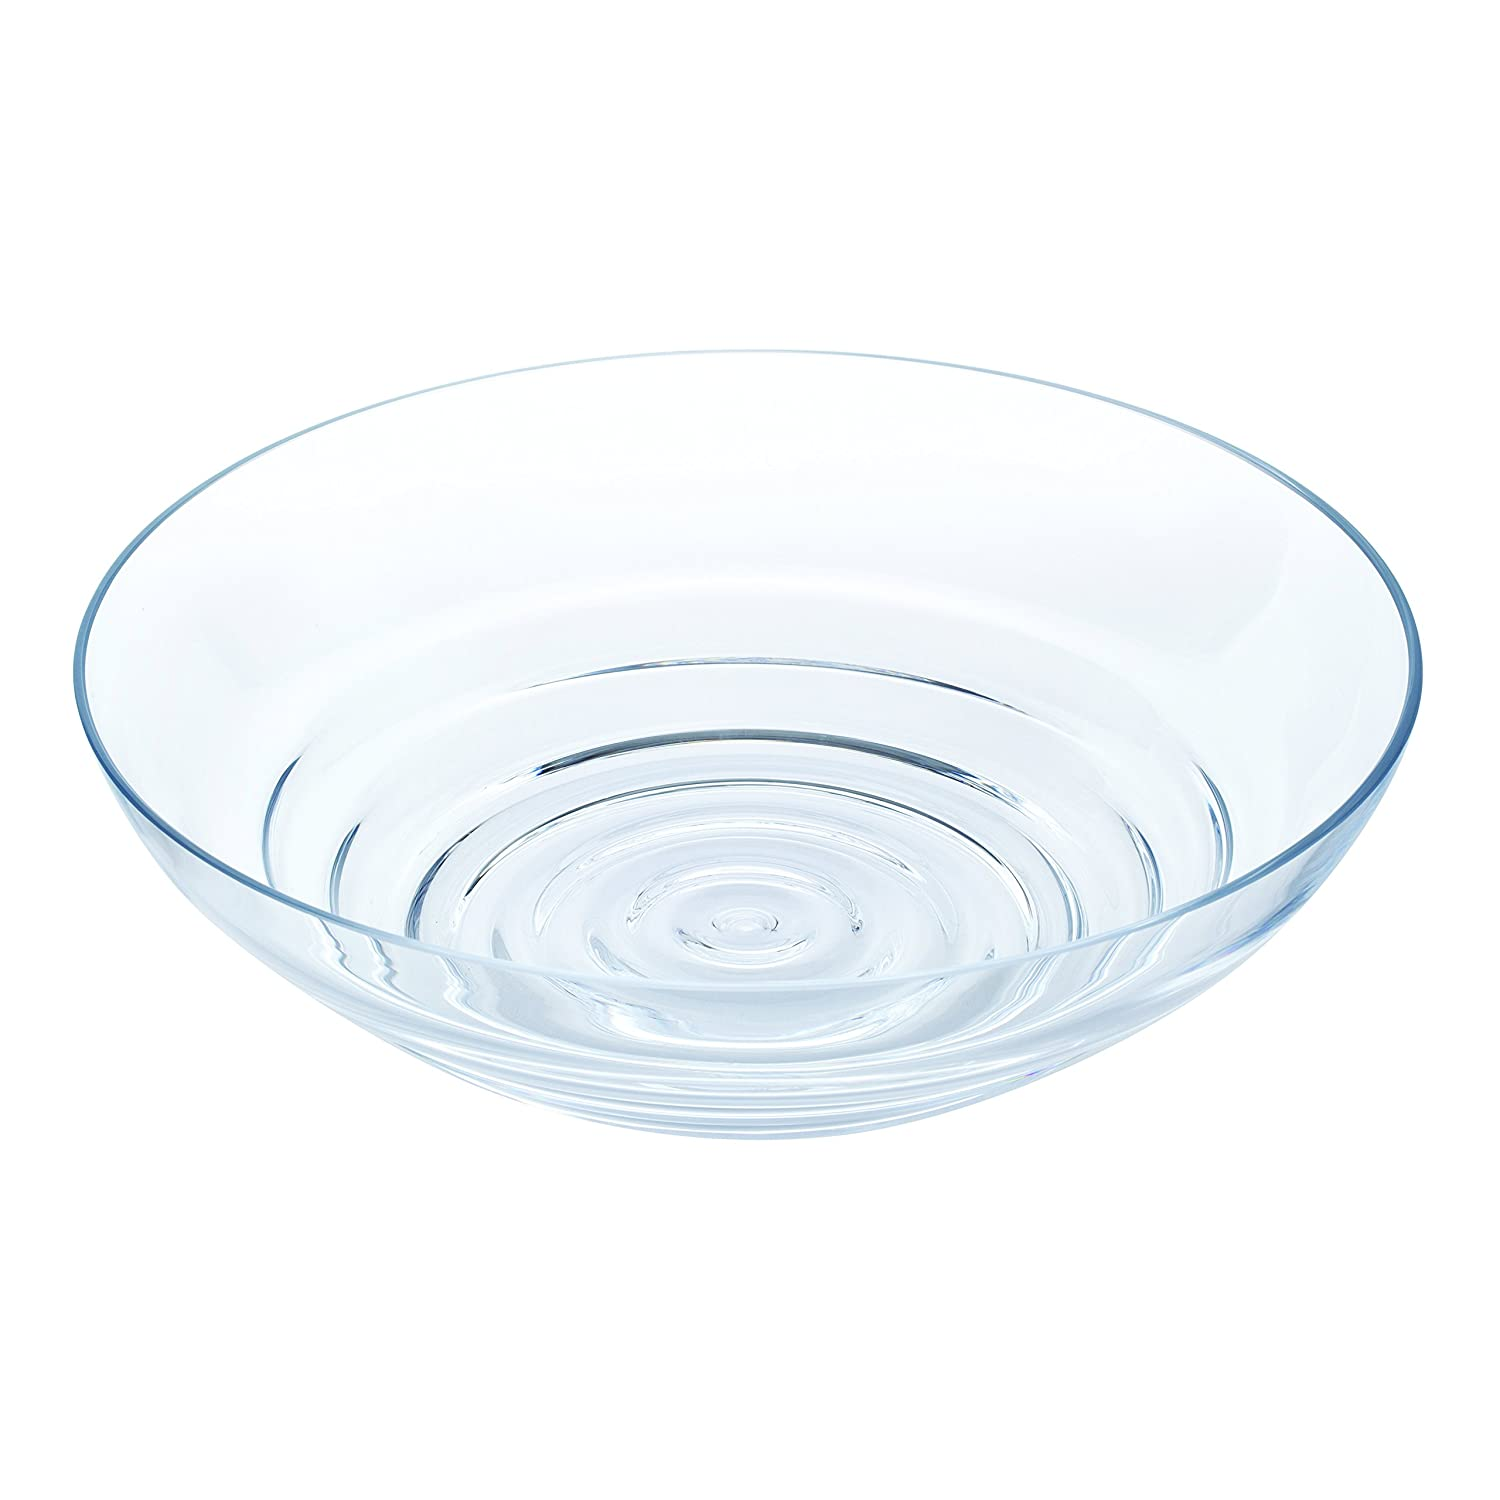 Dartington Crystal Wibble Centrepiece Bowl, Glass, Clear BD3074/CL